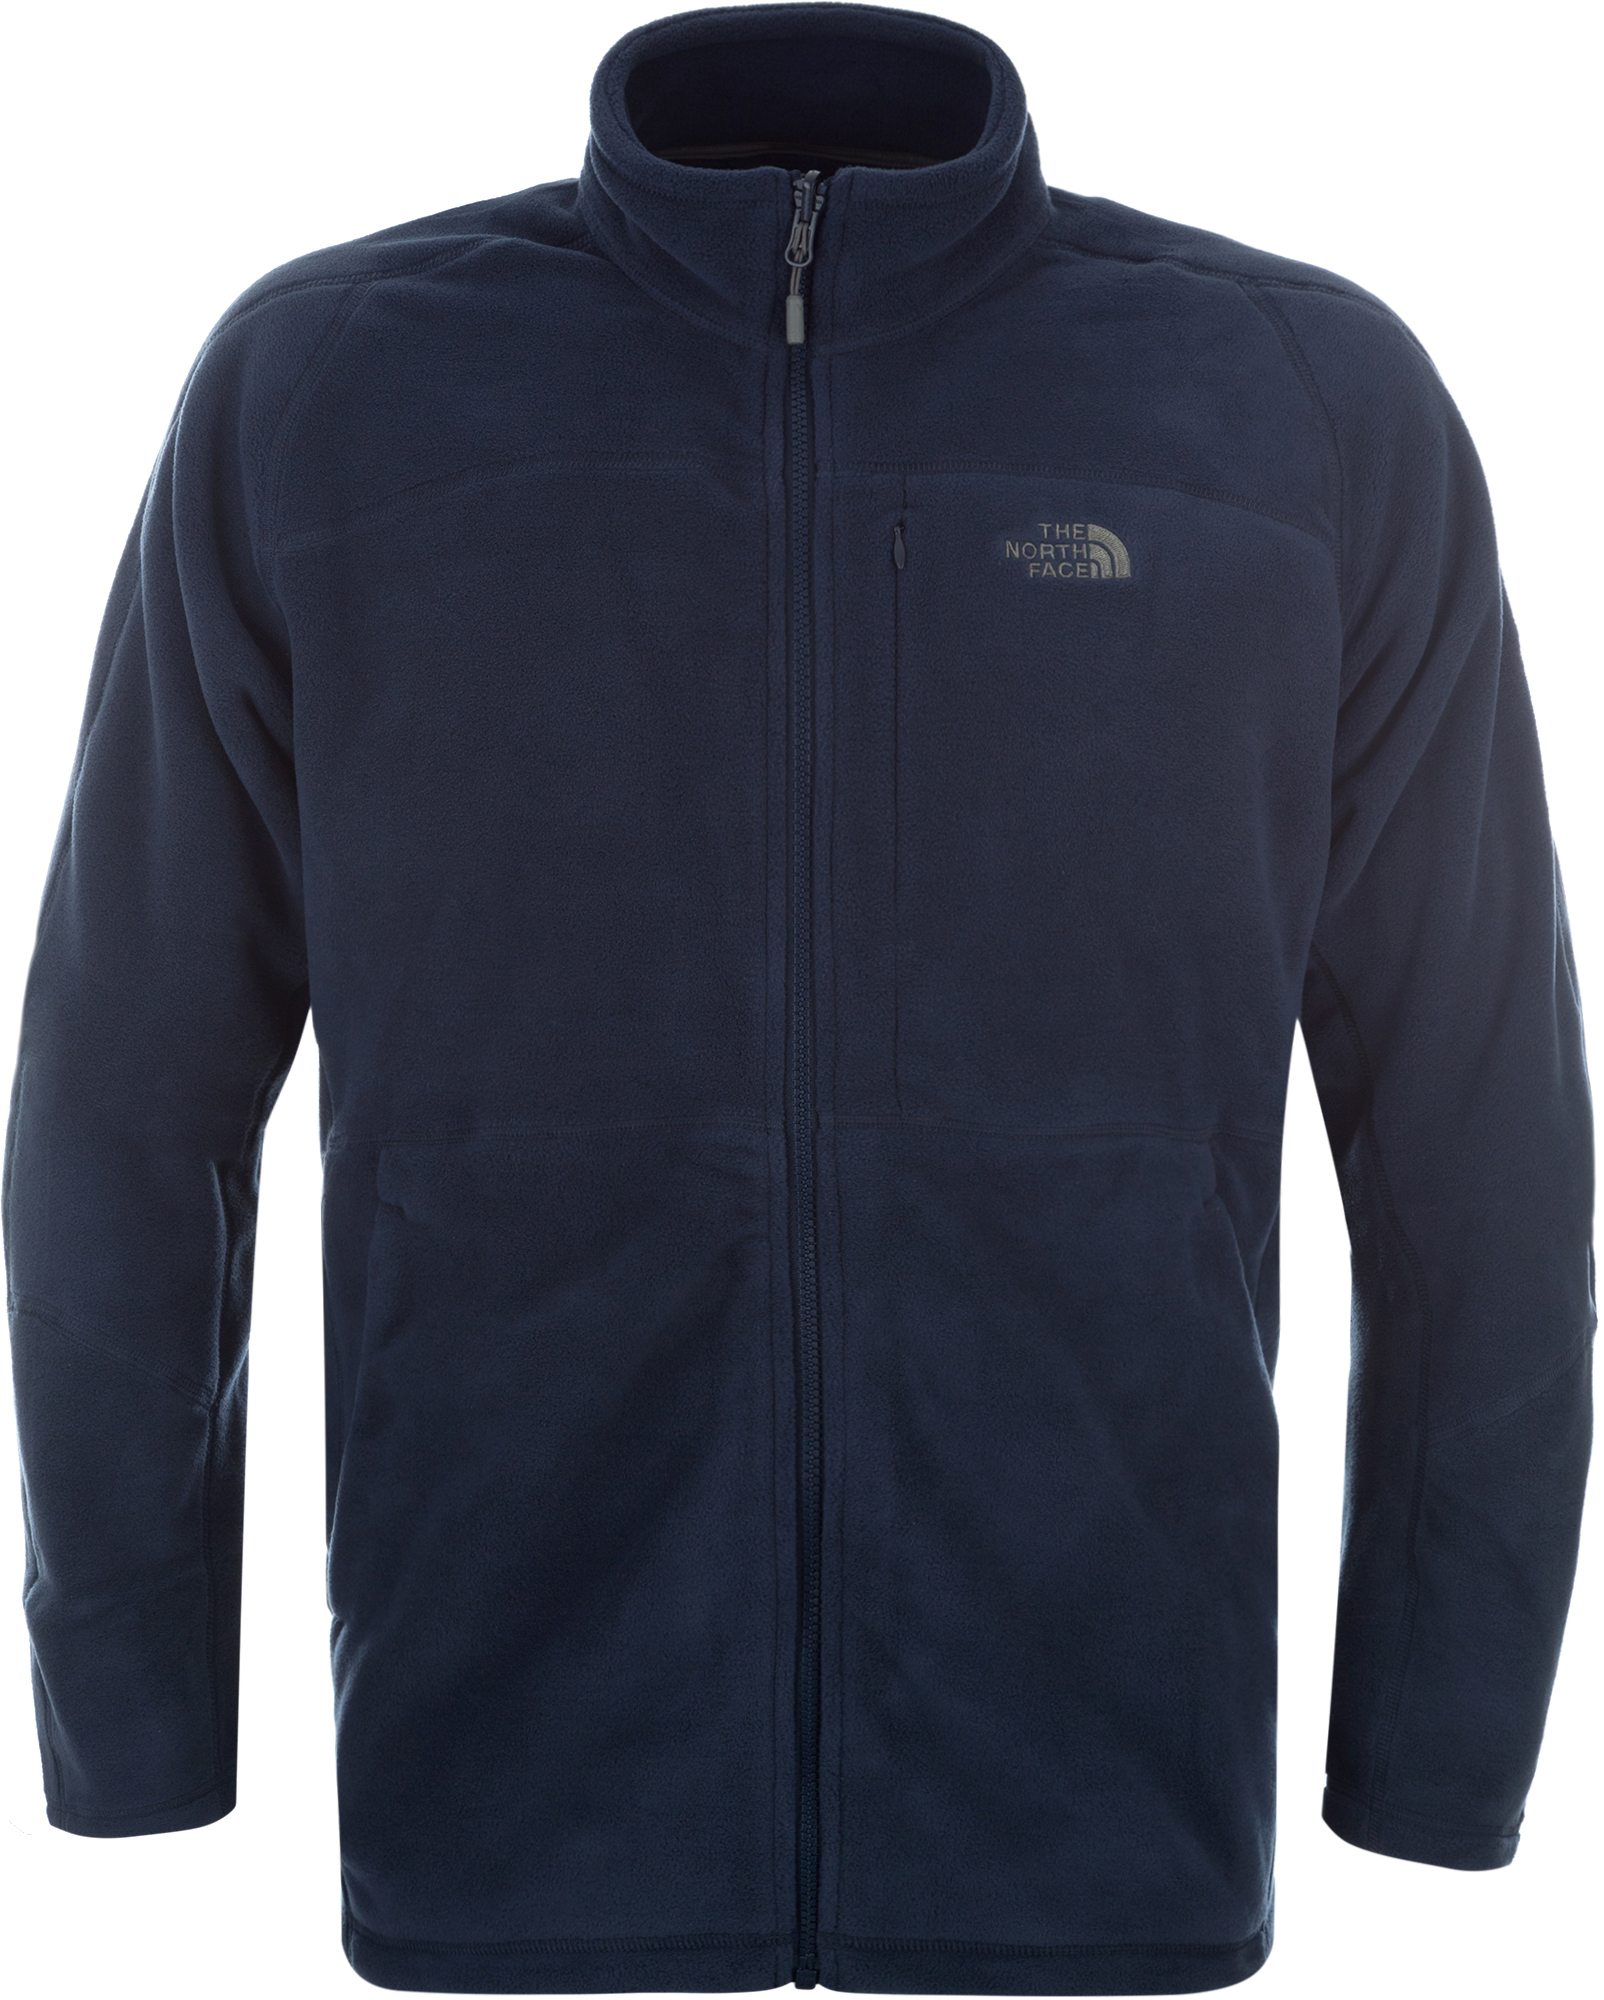 The North Face Джемпер мужской The North Face 200 Shadow Full Zip худи north pole